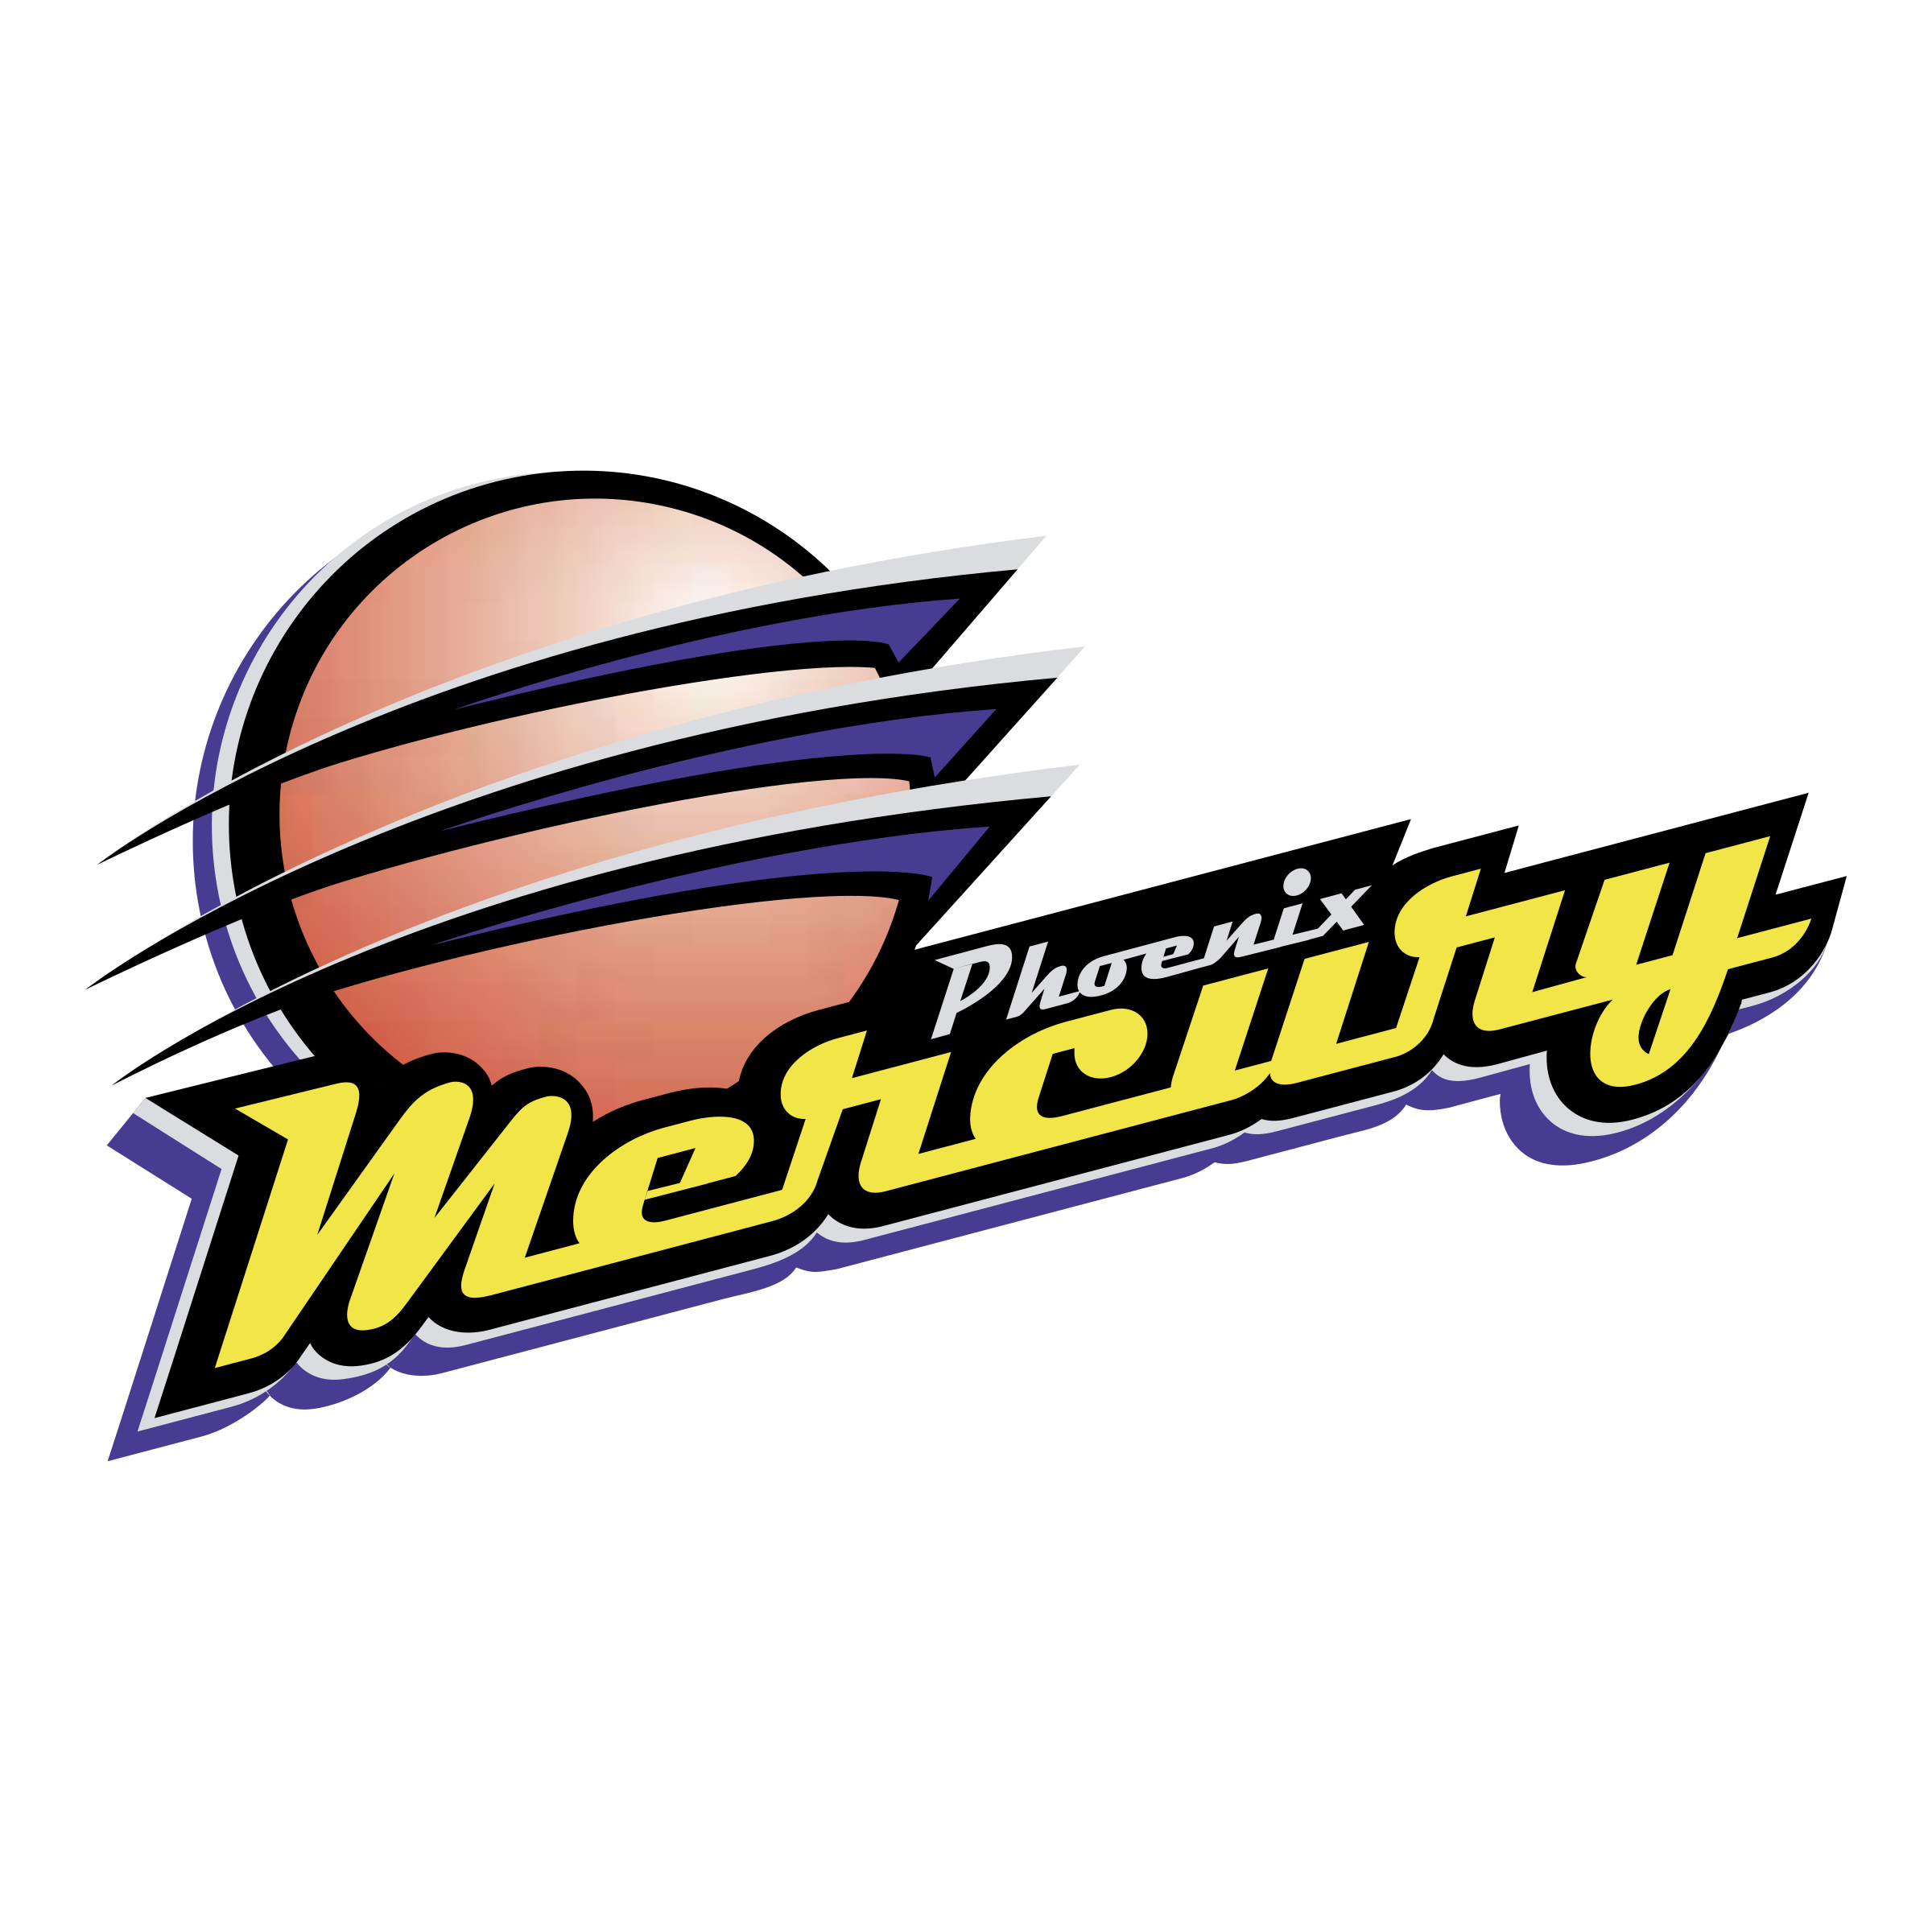 phoenix mercury logo png transparent svg vector freebie supply rh freebiesupply com phoenix mercury logo vector